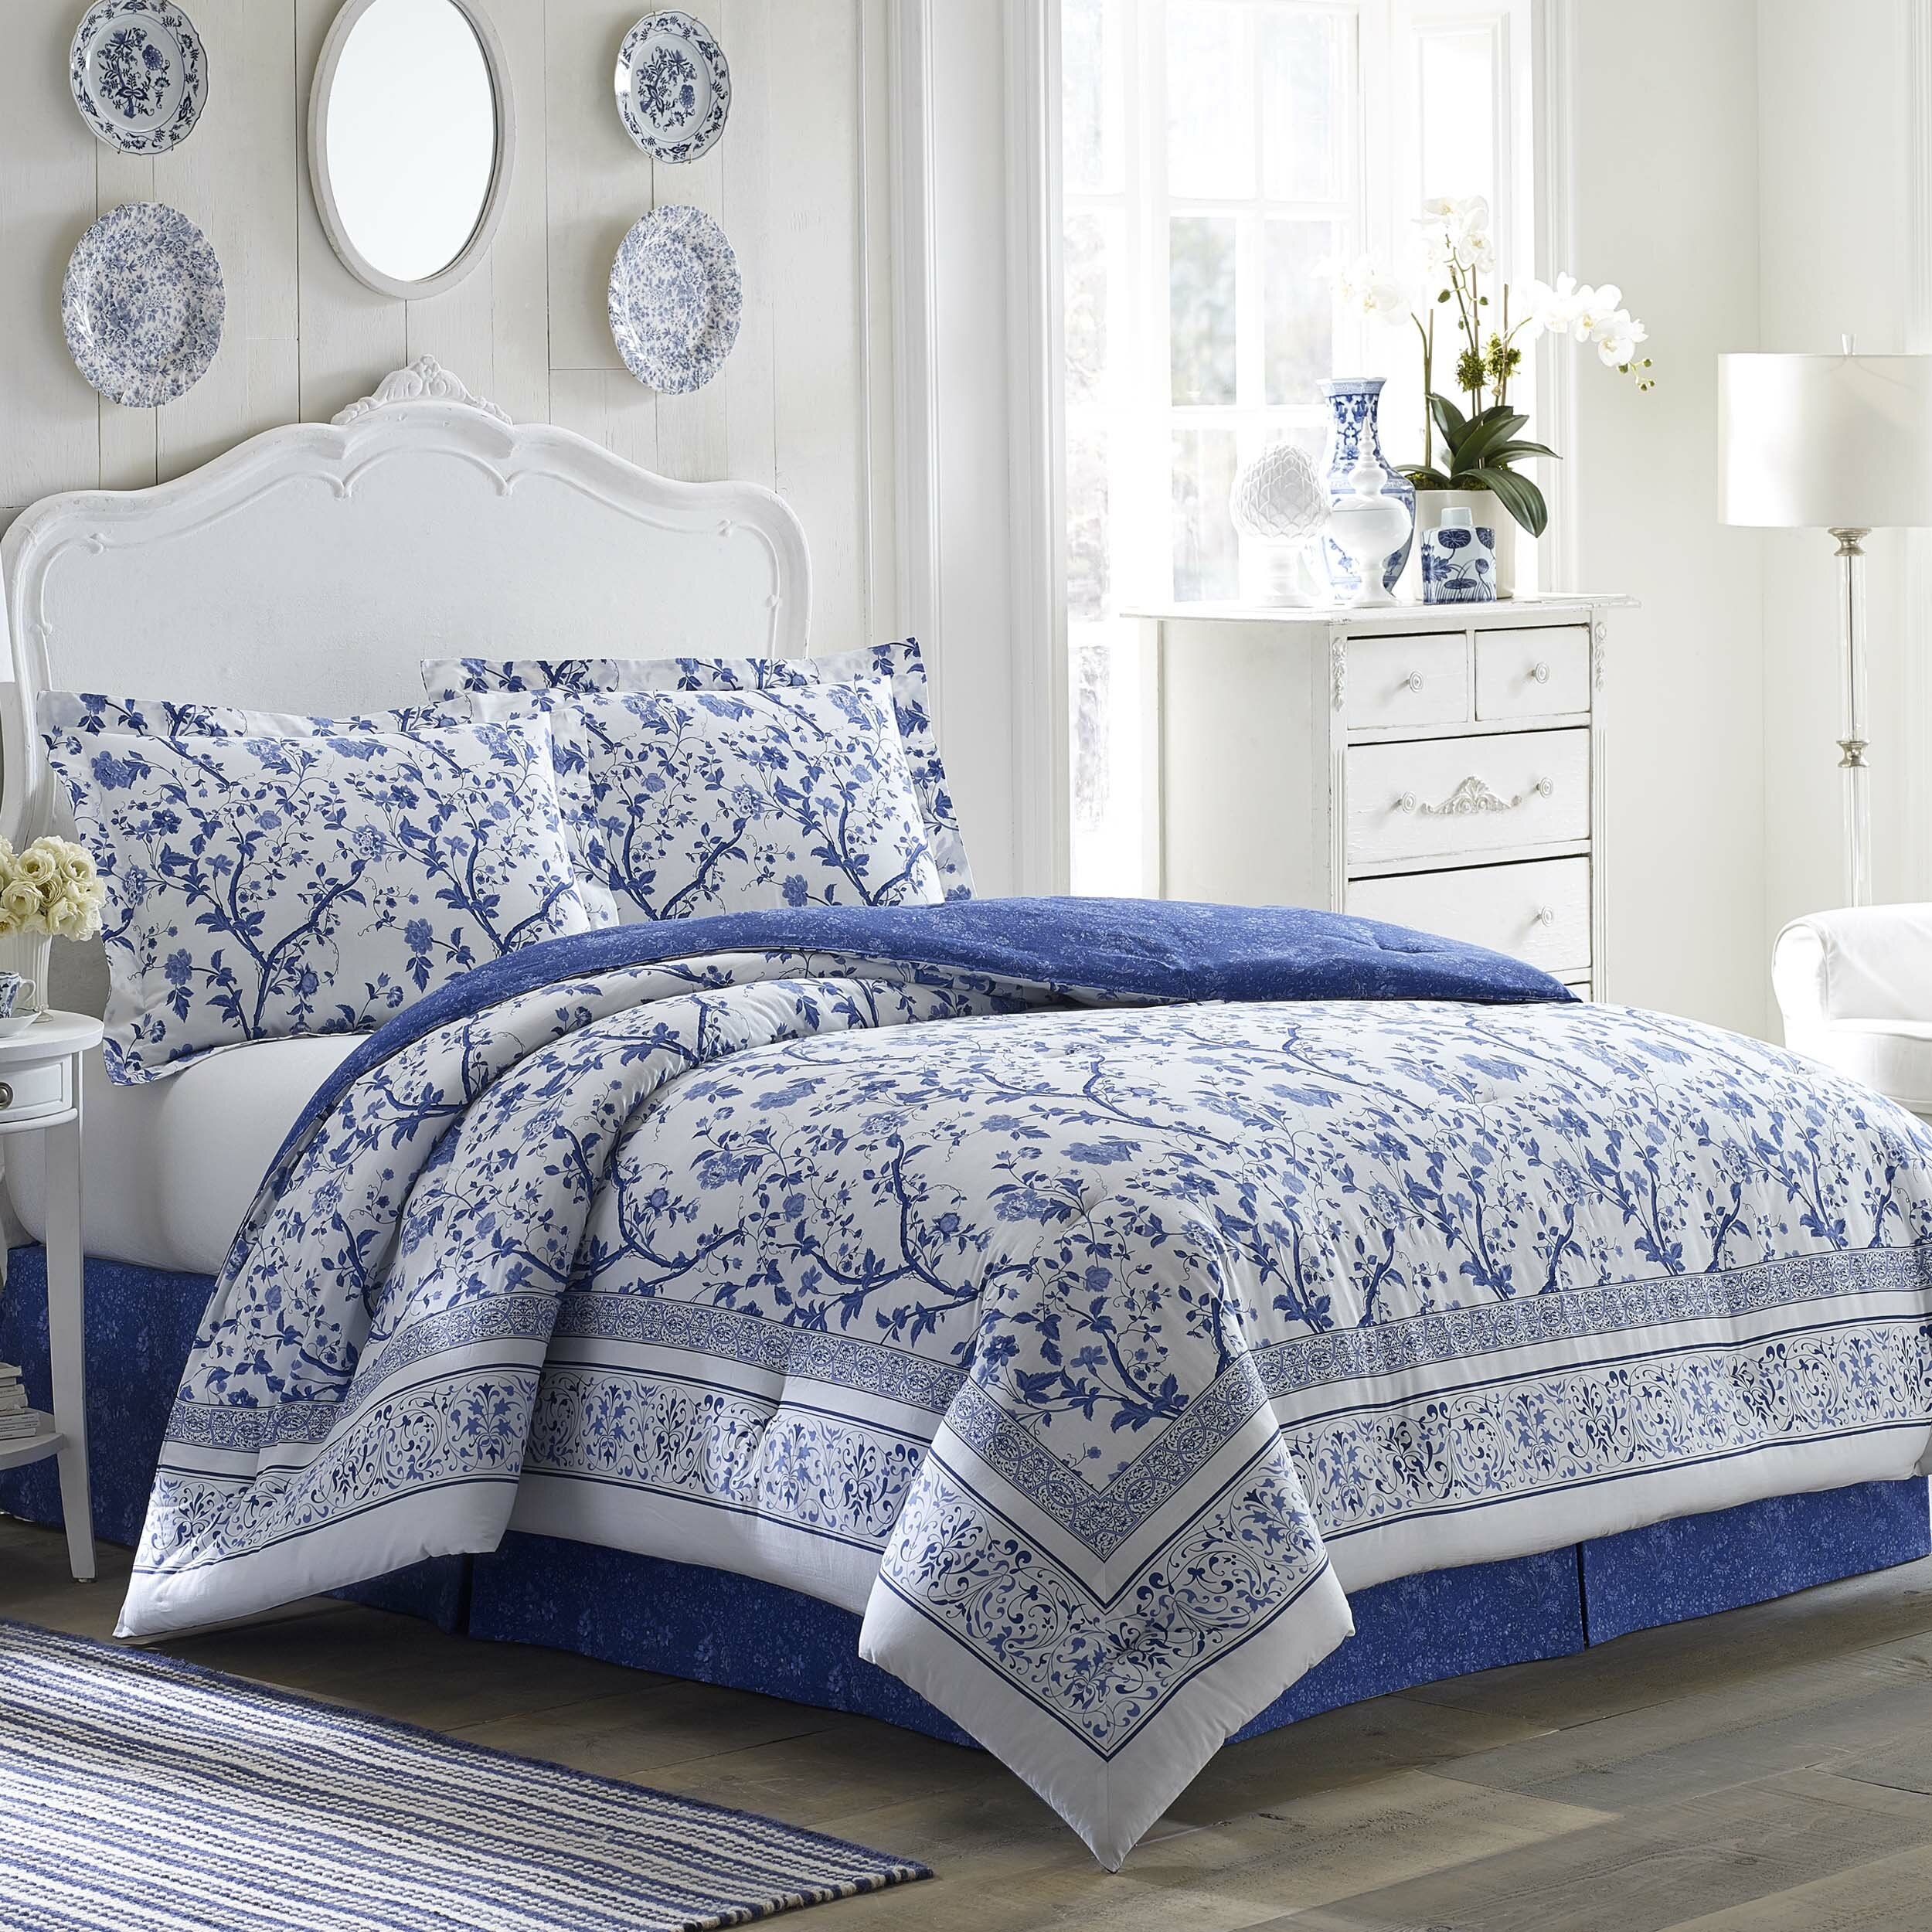 Laura Ashley Bedroom Laura Ashley Bedding Charlotte Comforter Collection Reviews